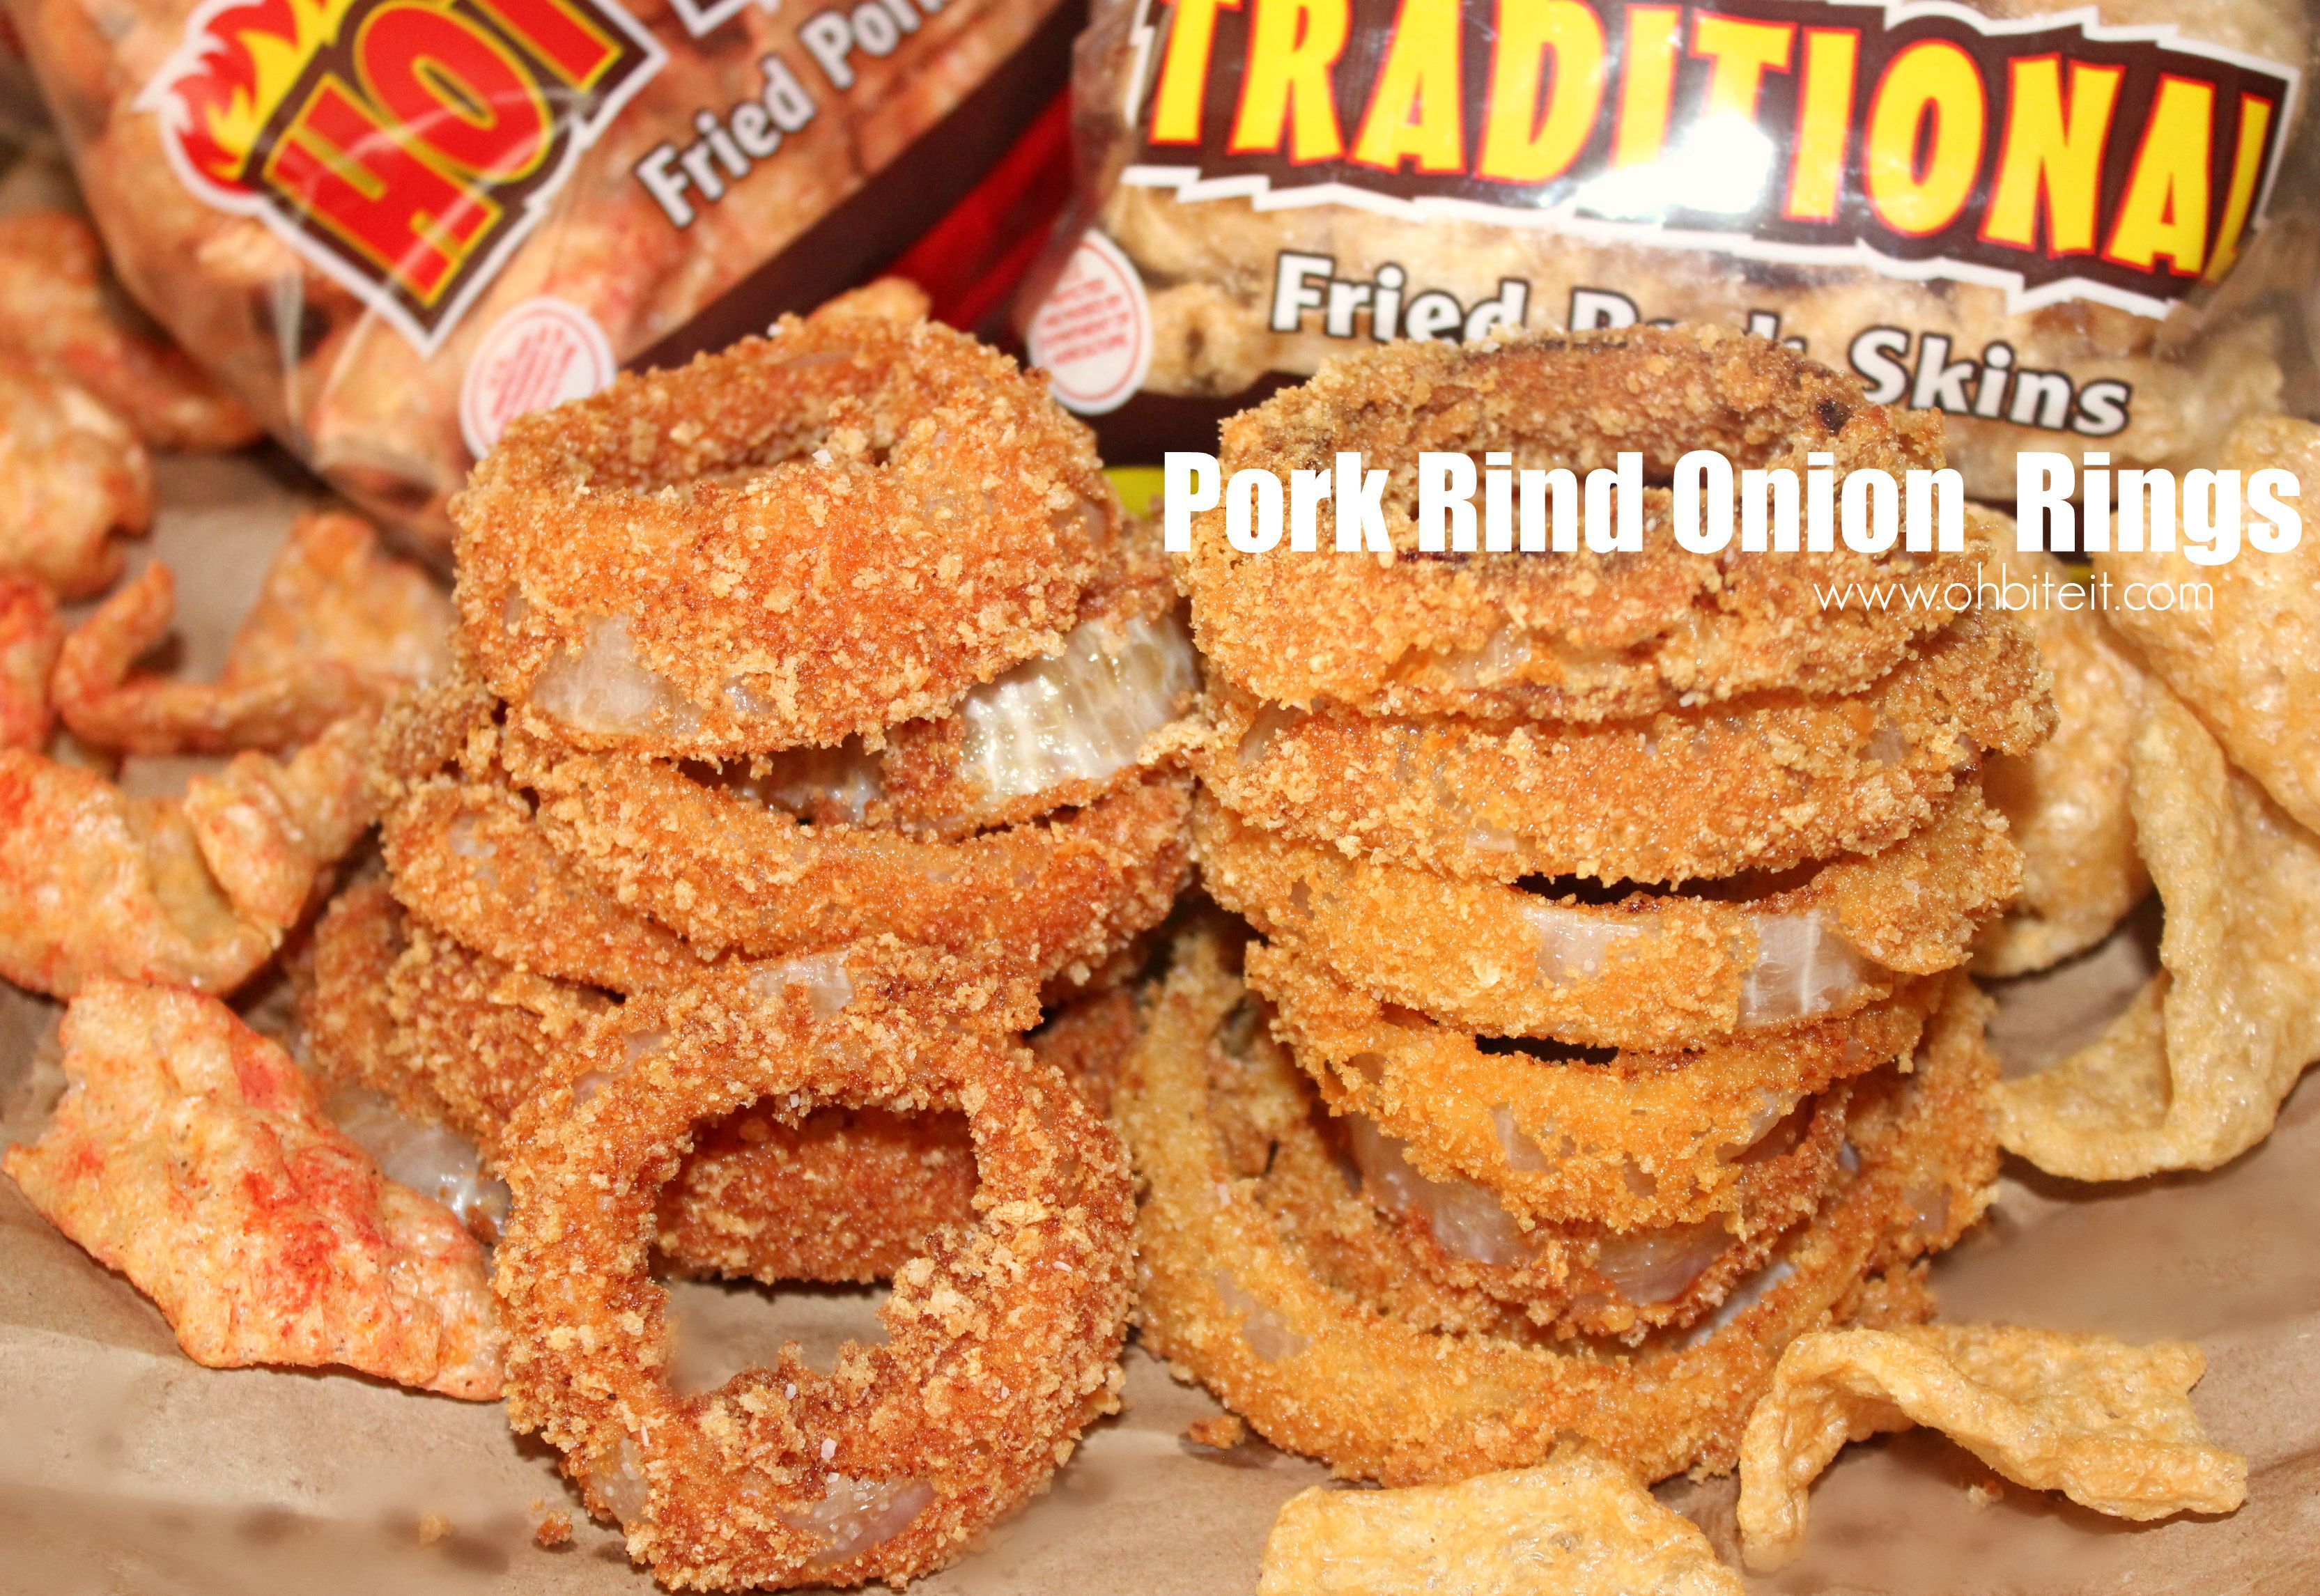 Low Carb Fried Onion Rings | Keto meal prep, Trout recipes